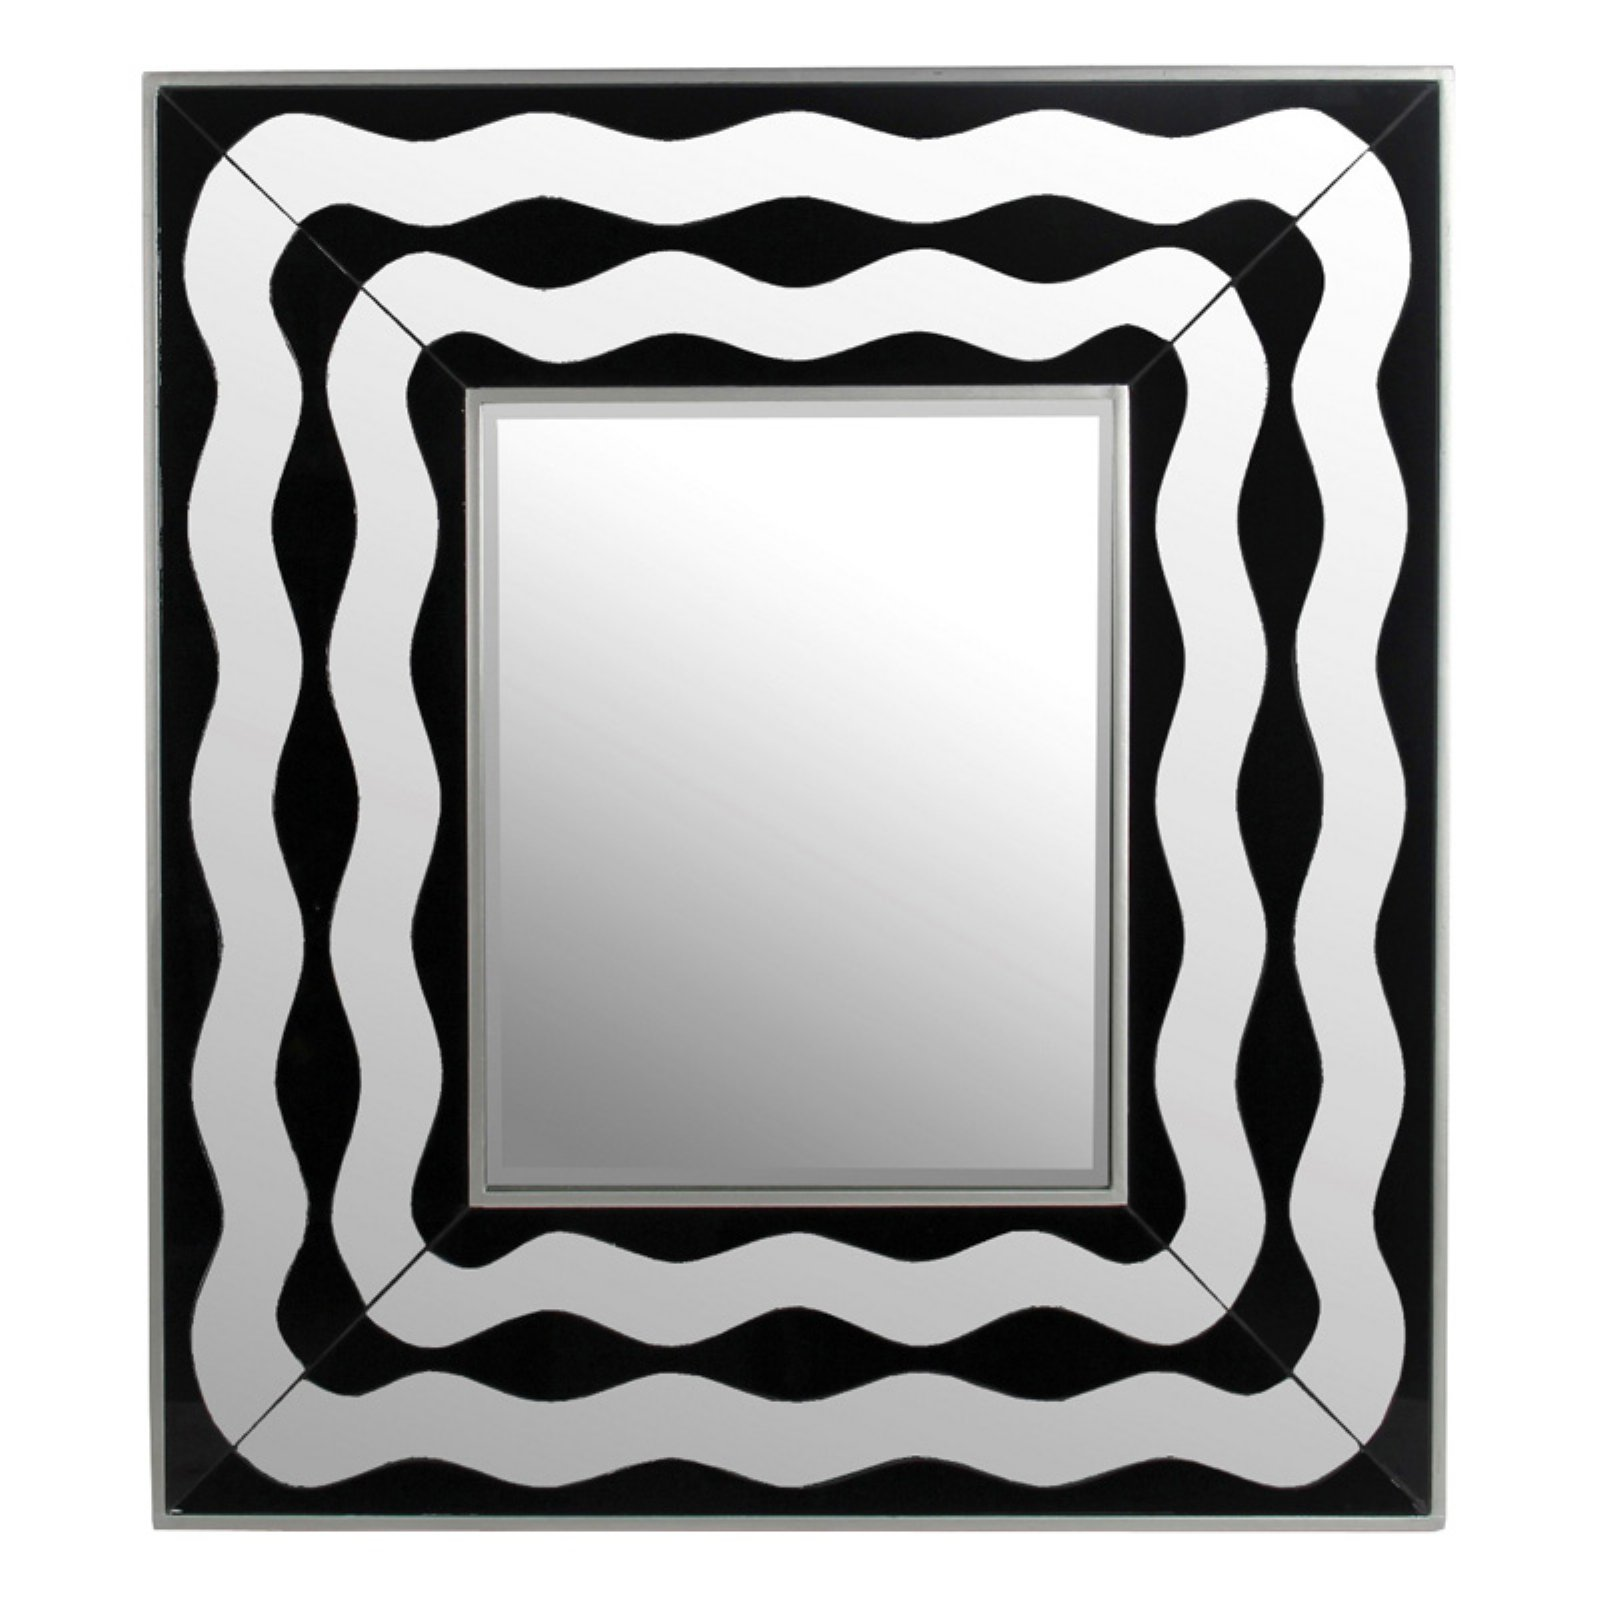 Privilege International Rectangle Wall Mirror - 31.5W x 35.5H in.